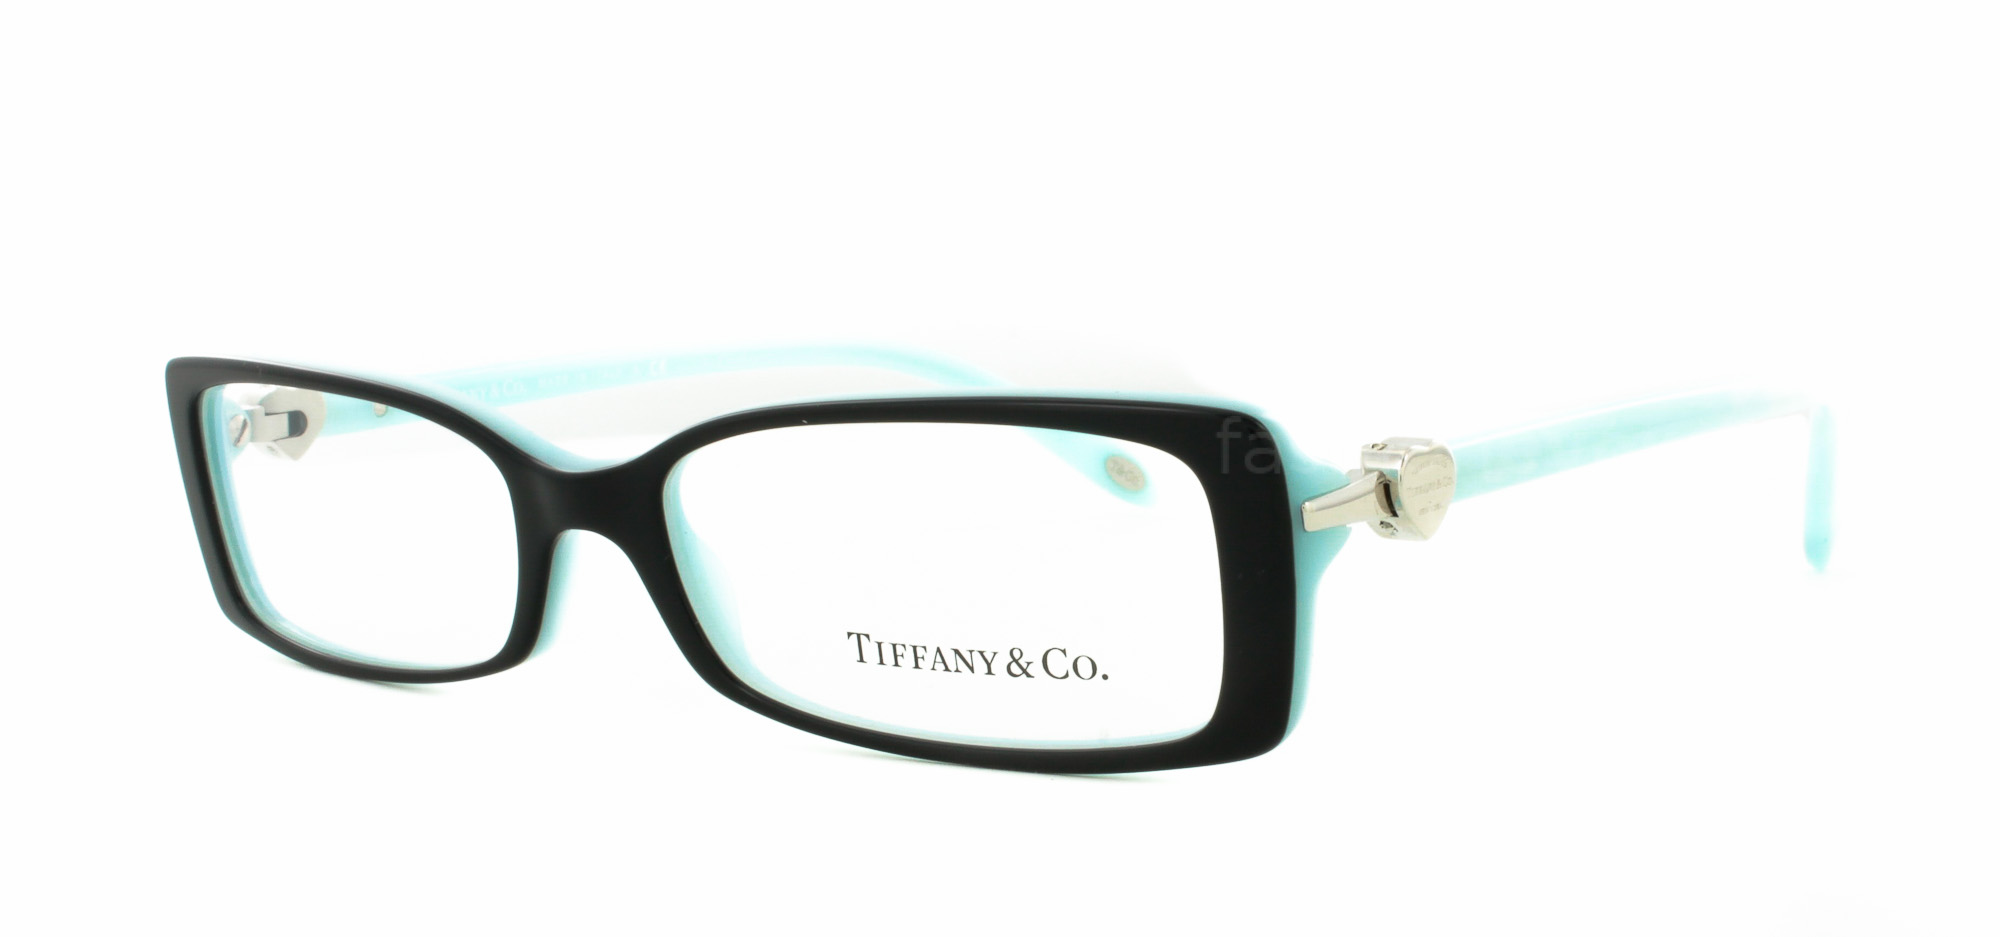 Tiffany 2035 Eyeglasses